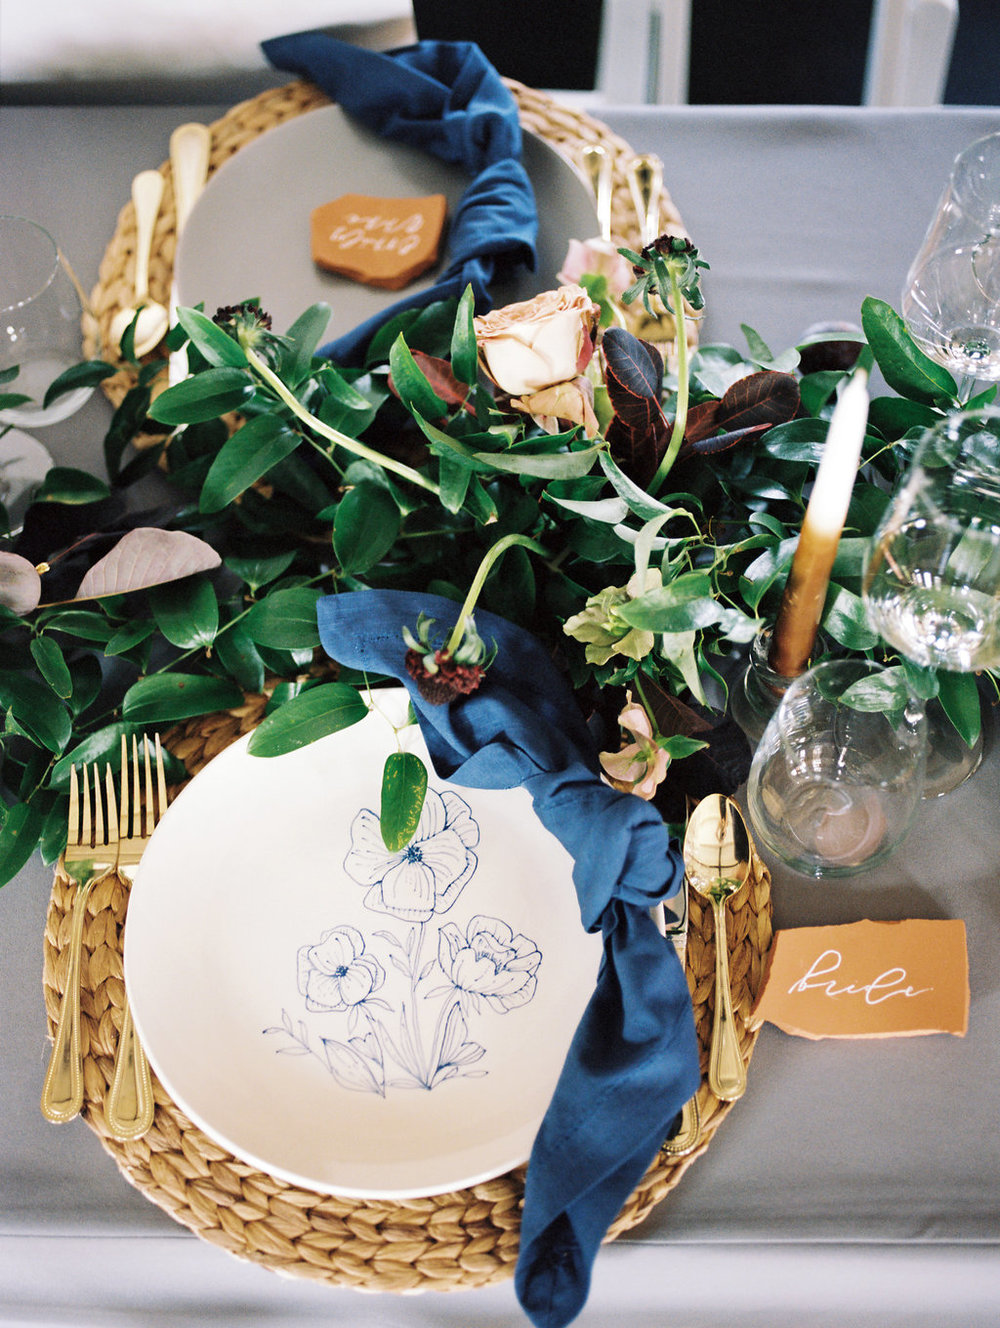 Pottery Wedding Ideas - Modern Wedding Decor